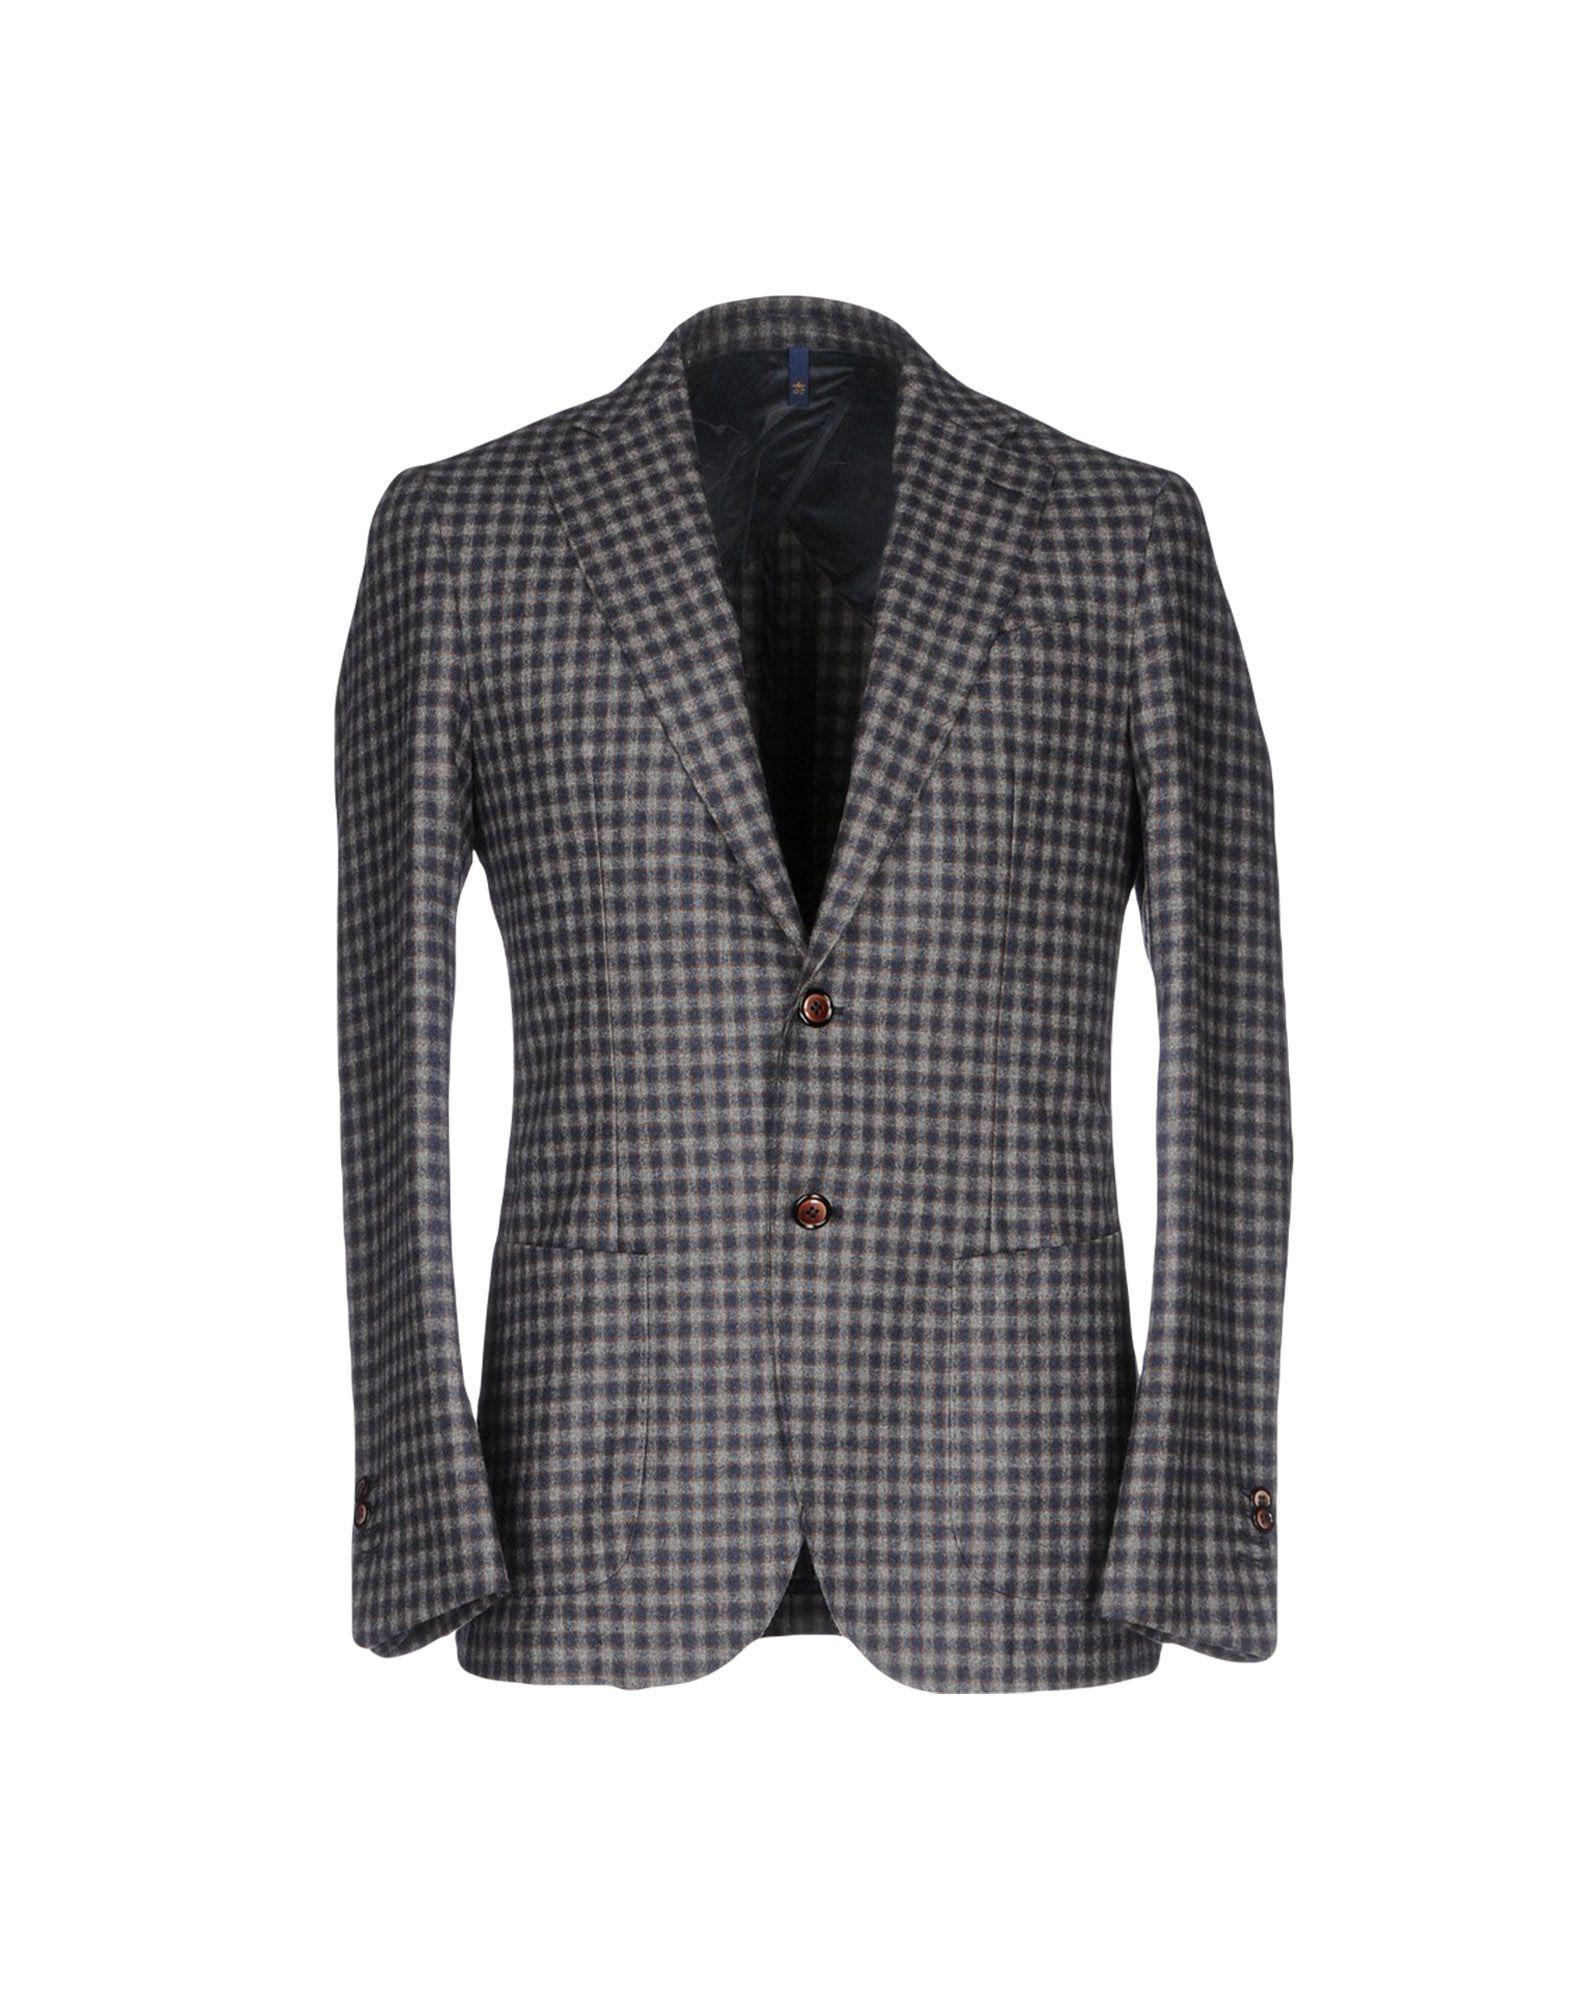 5c9a077e39e131 Domenico Tagliente - Blue Blazer for Men - Lyst. View fullscreen